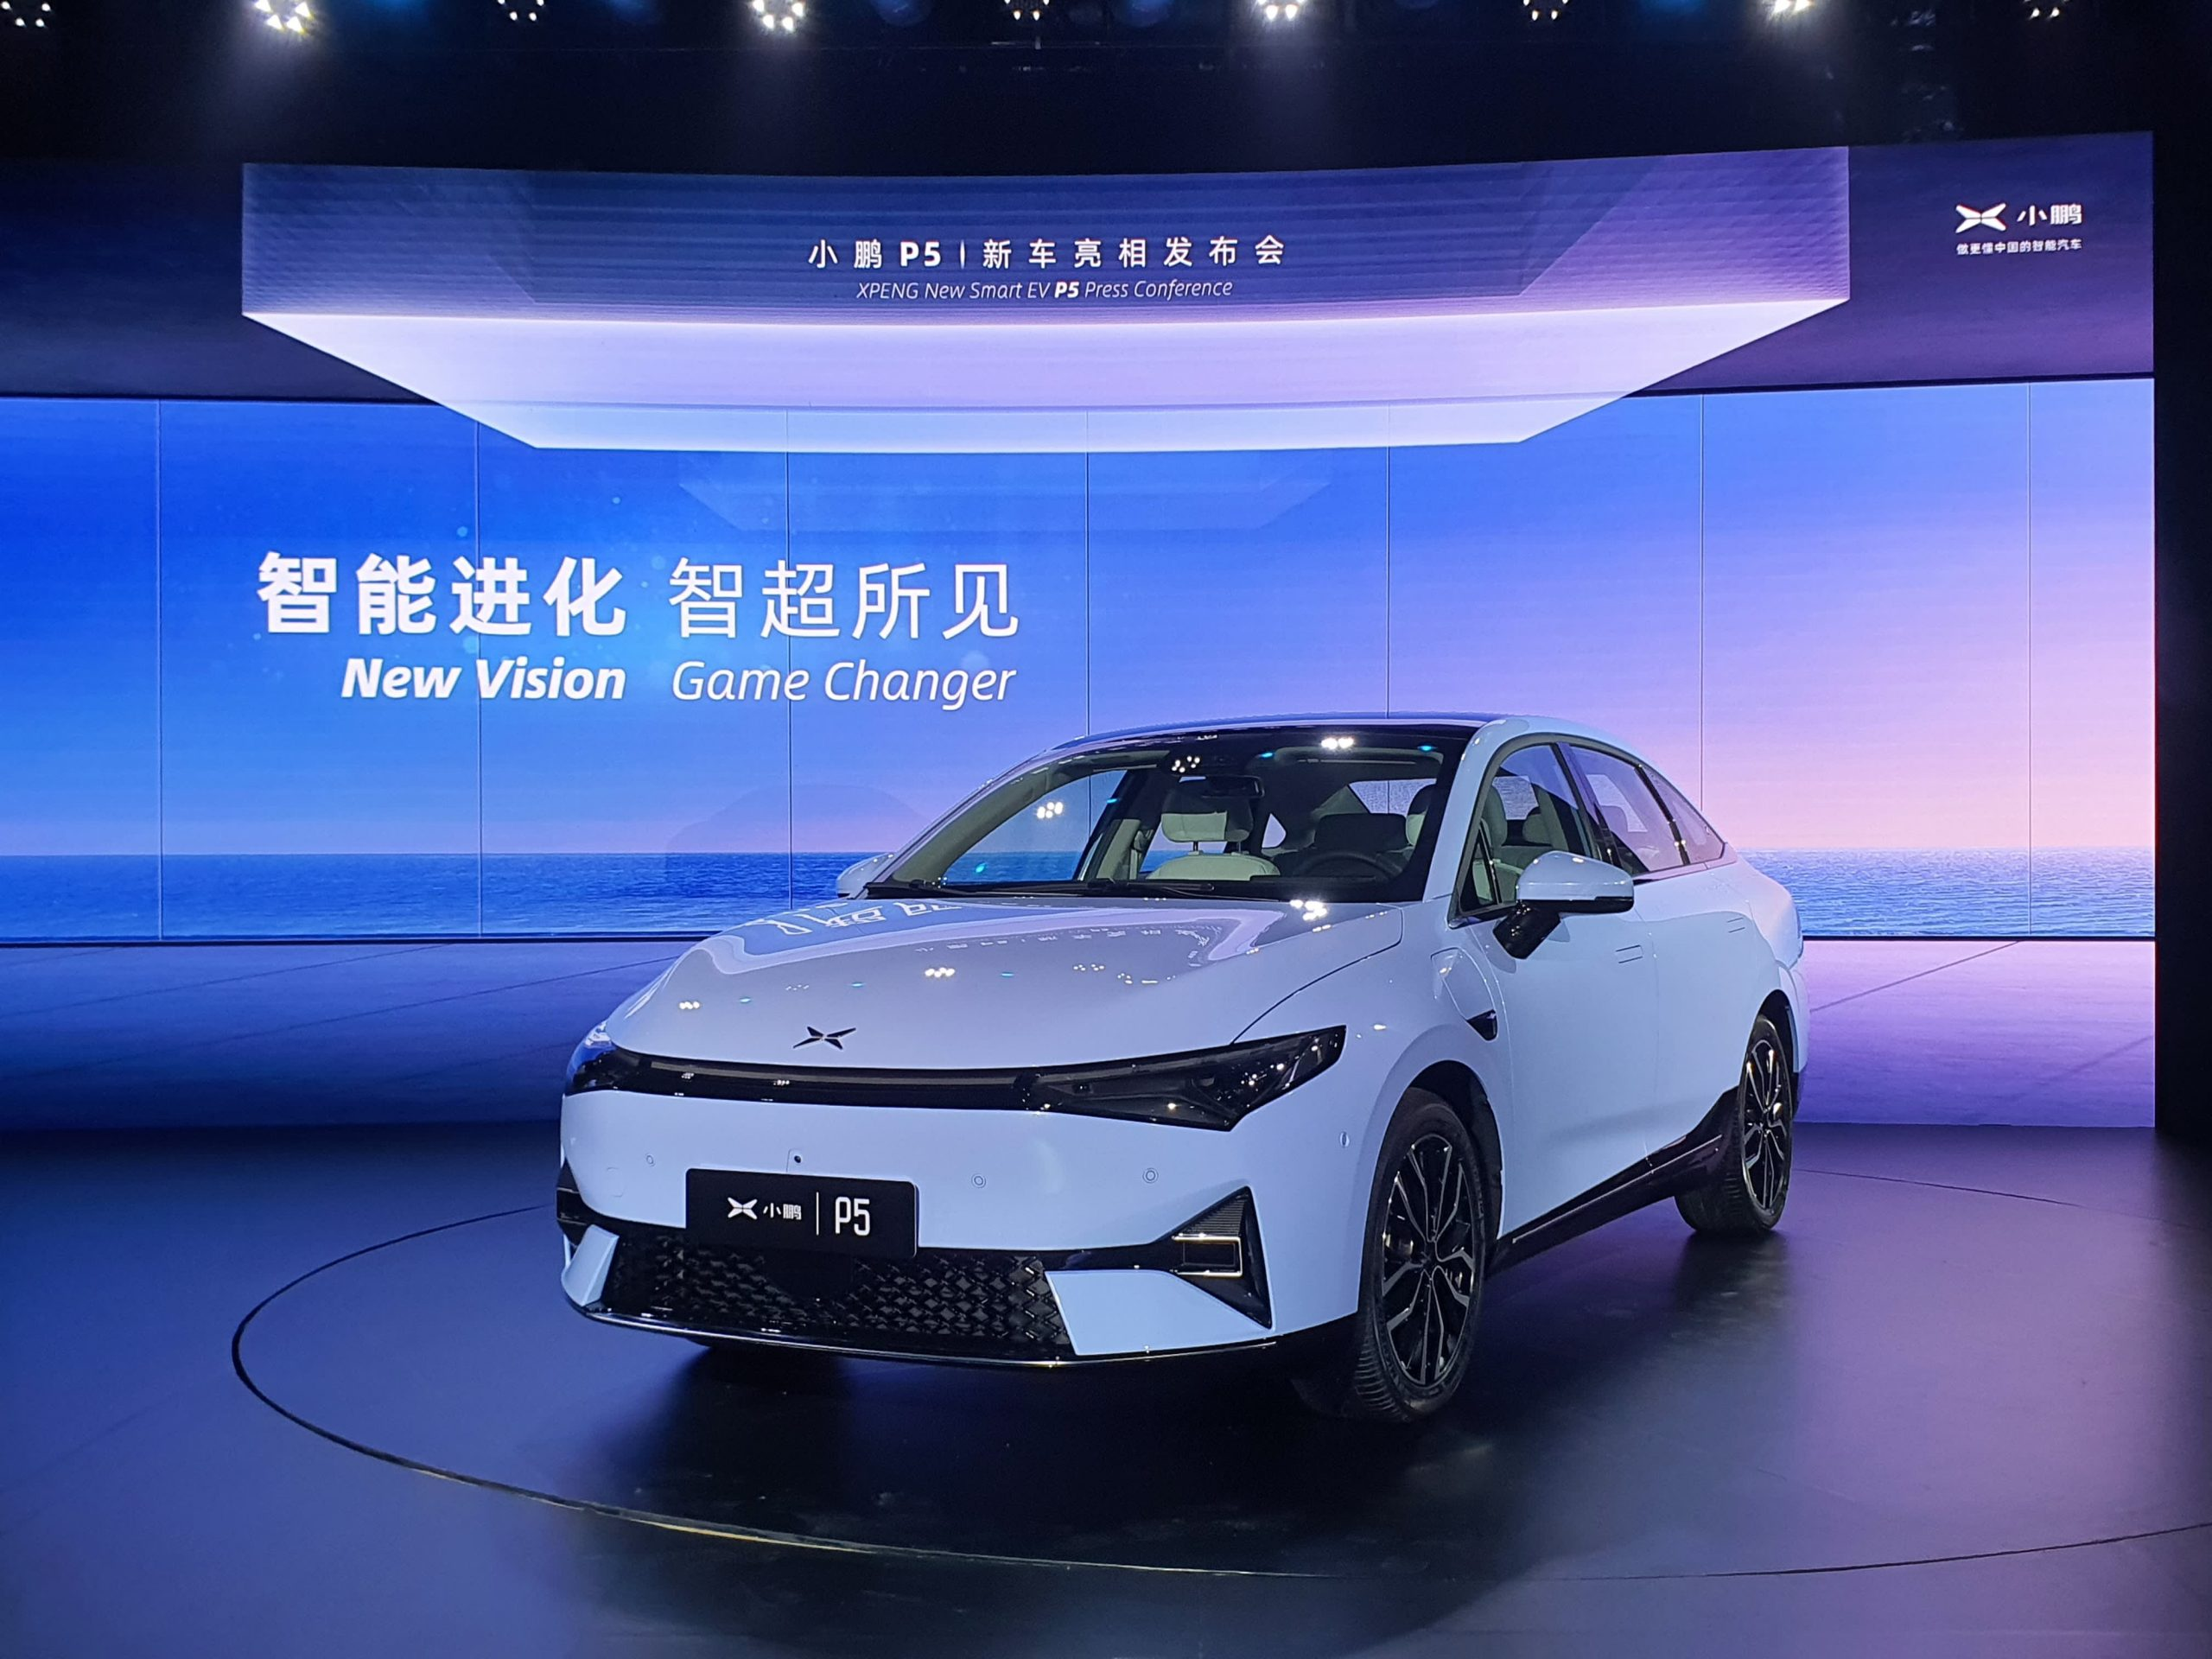 Chinese electric car start-up Li Auto delivers over 1,000 more cars than Xpeng in June